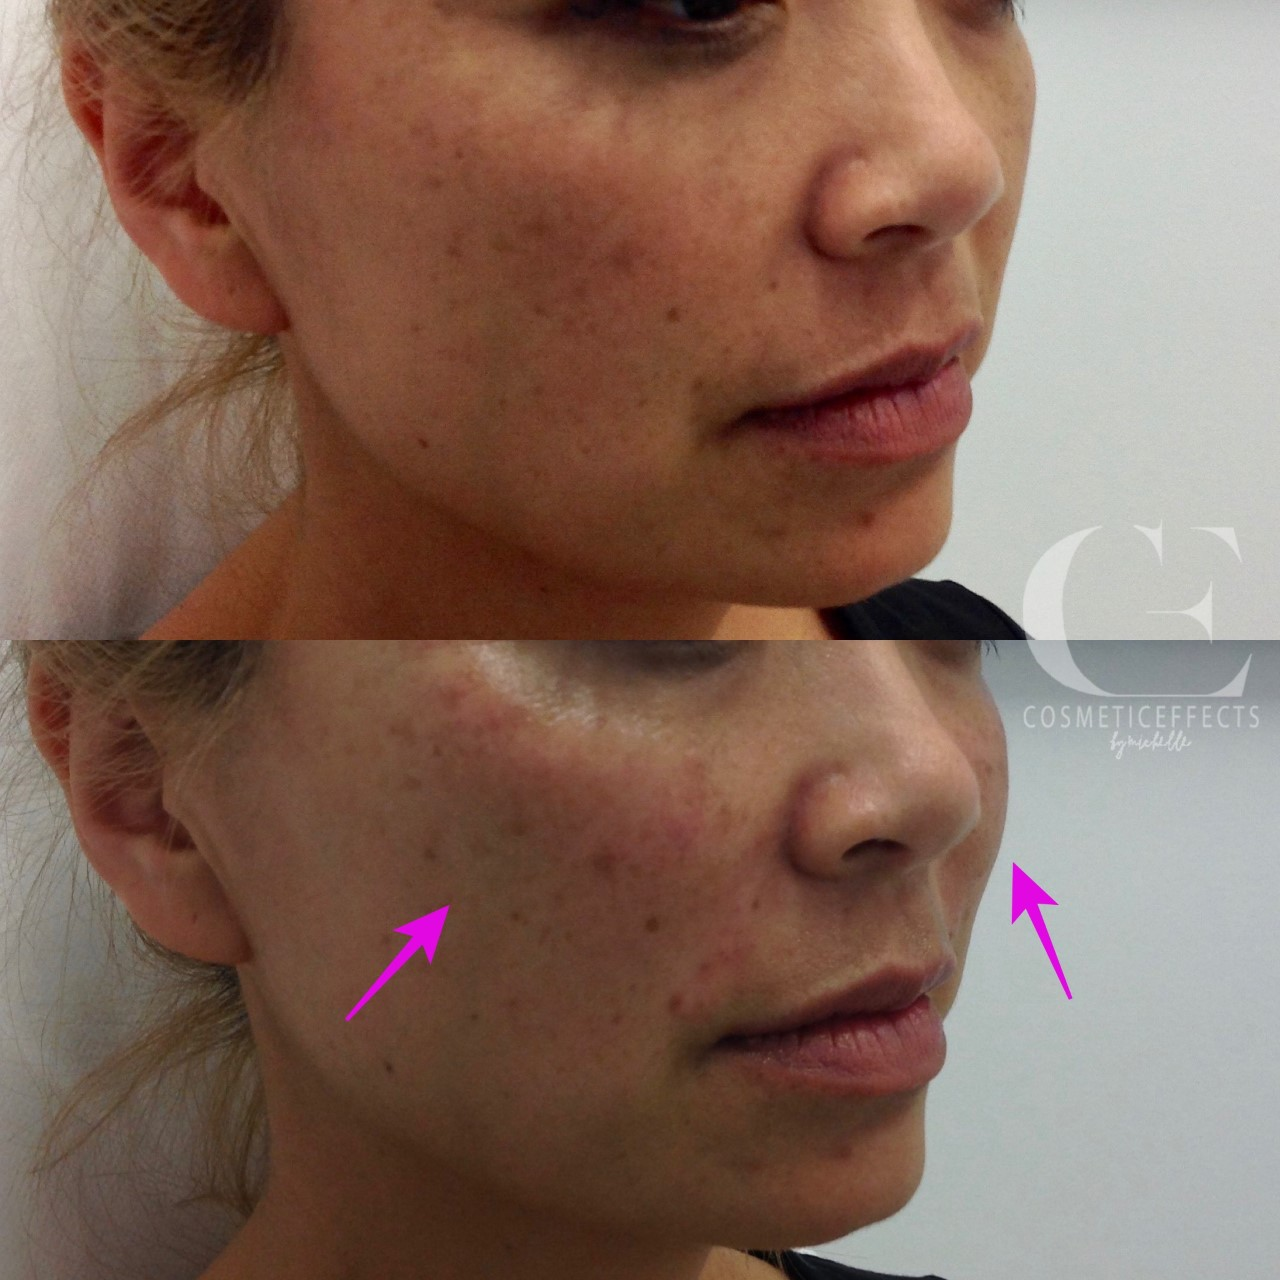 tear trough filler cost melbourne